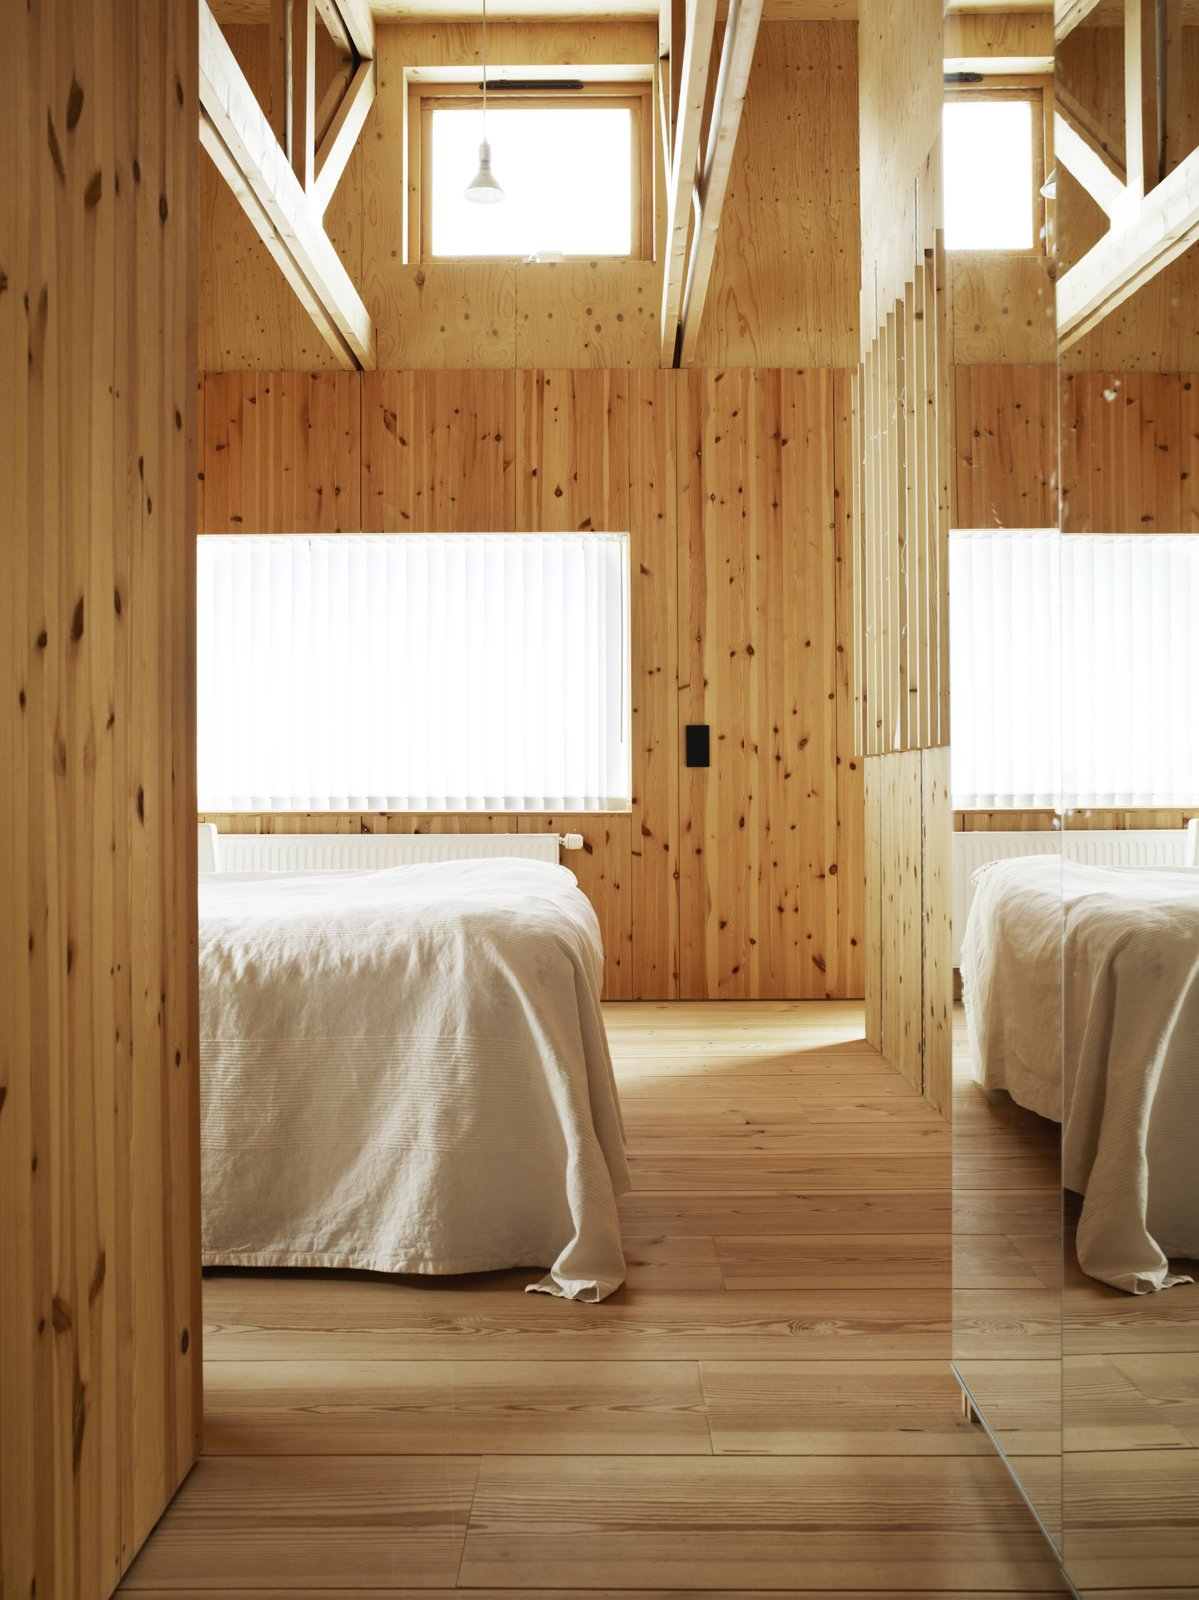 The white linens appear almost ghostly against the natural grain of the wood and muted glow of the window's winter light. 10 Warm Wood Floors - Photo 9 of 11